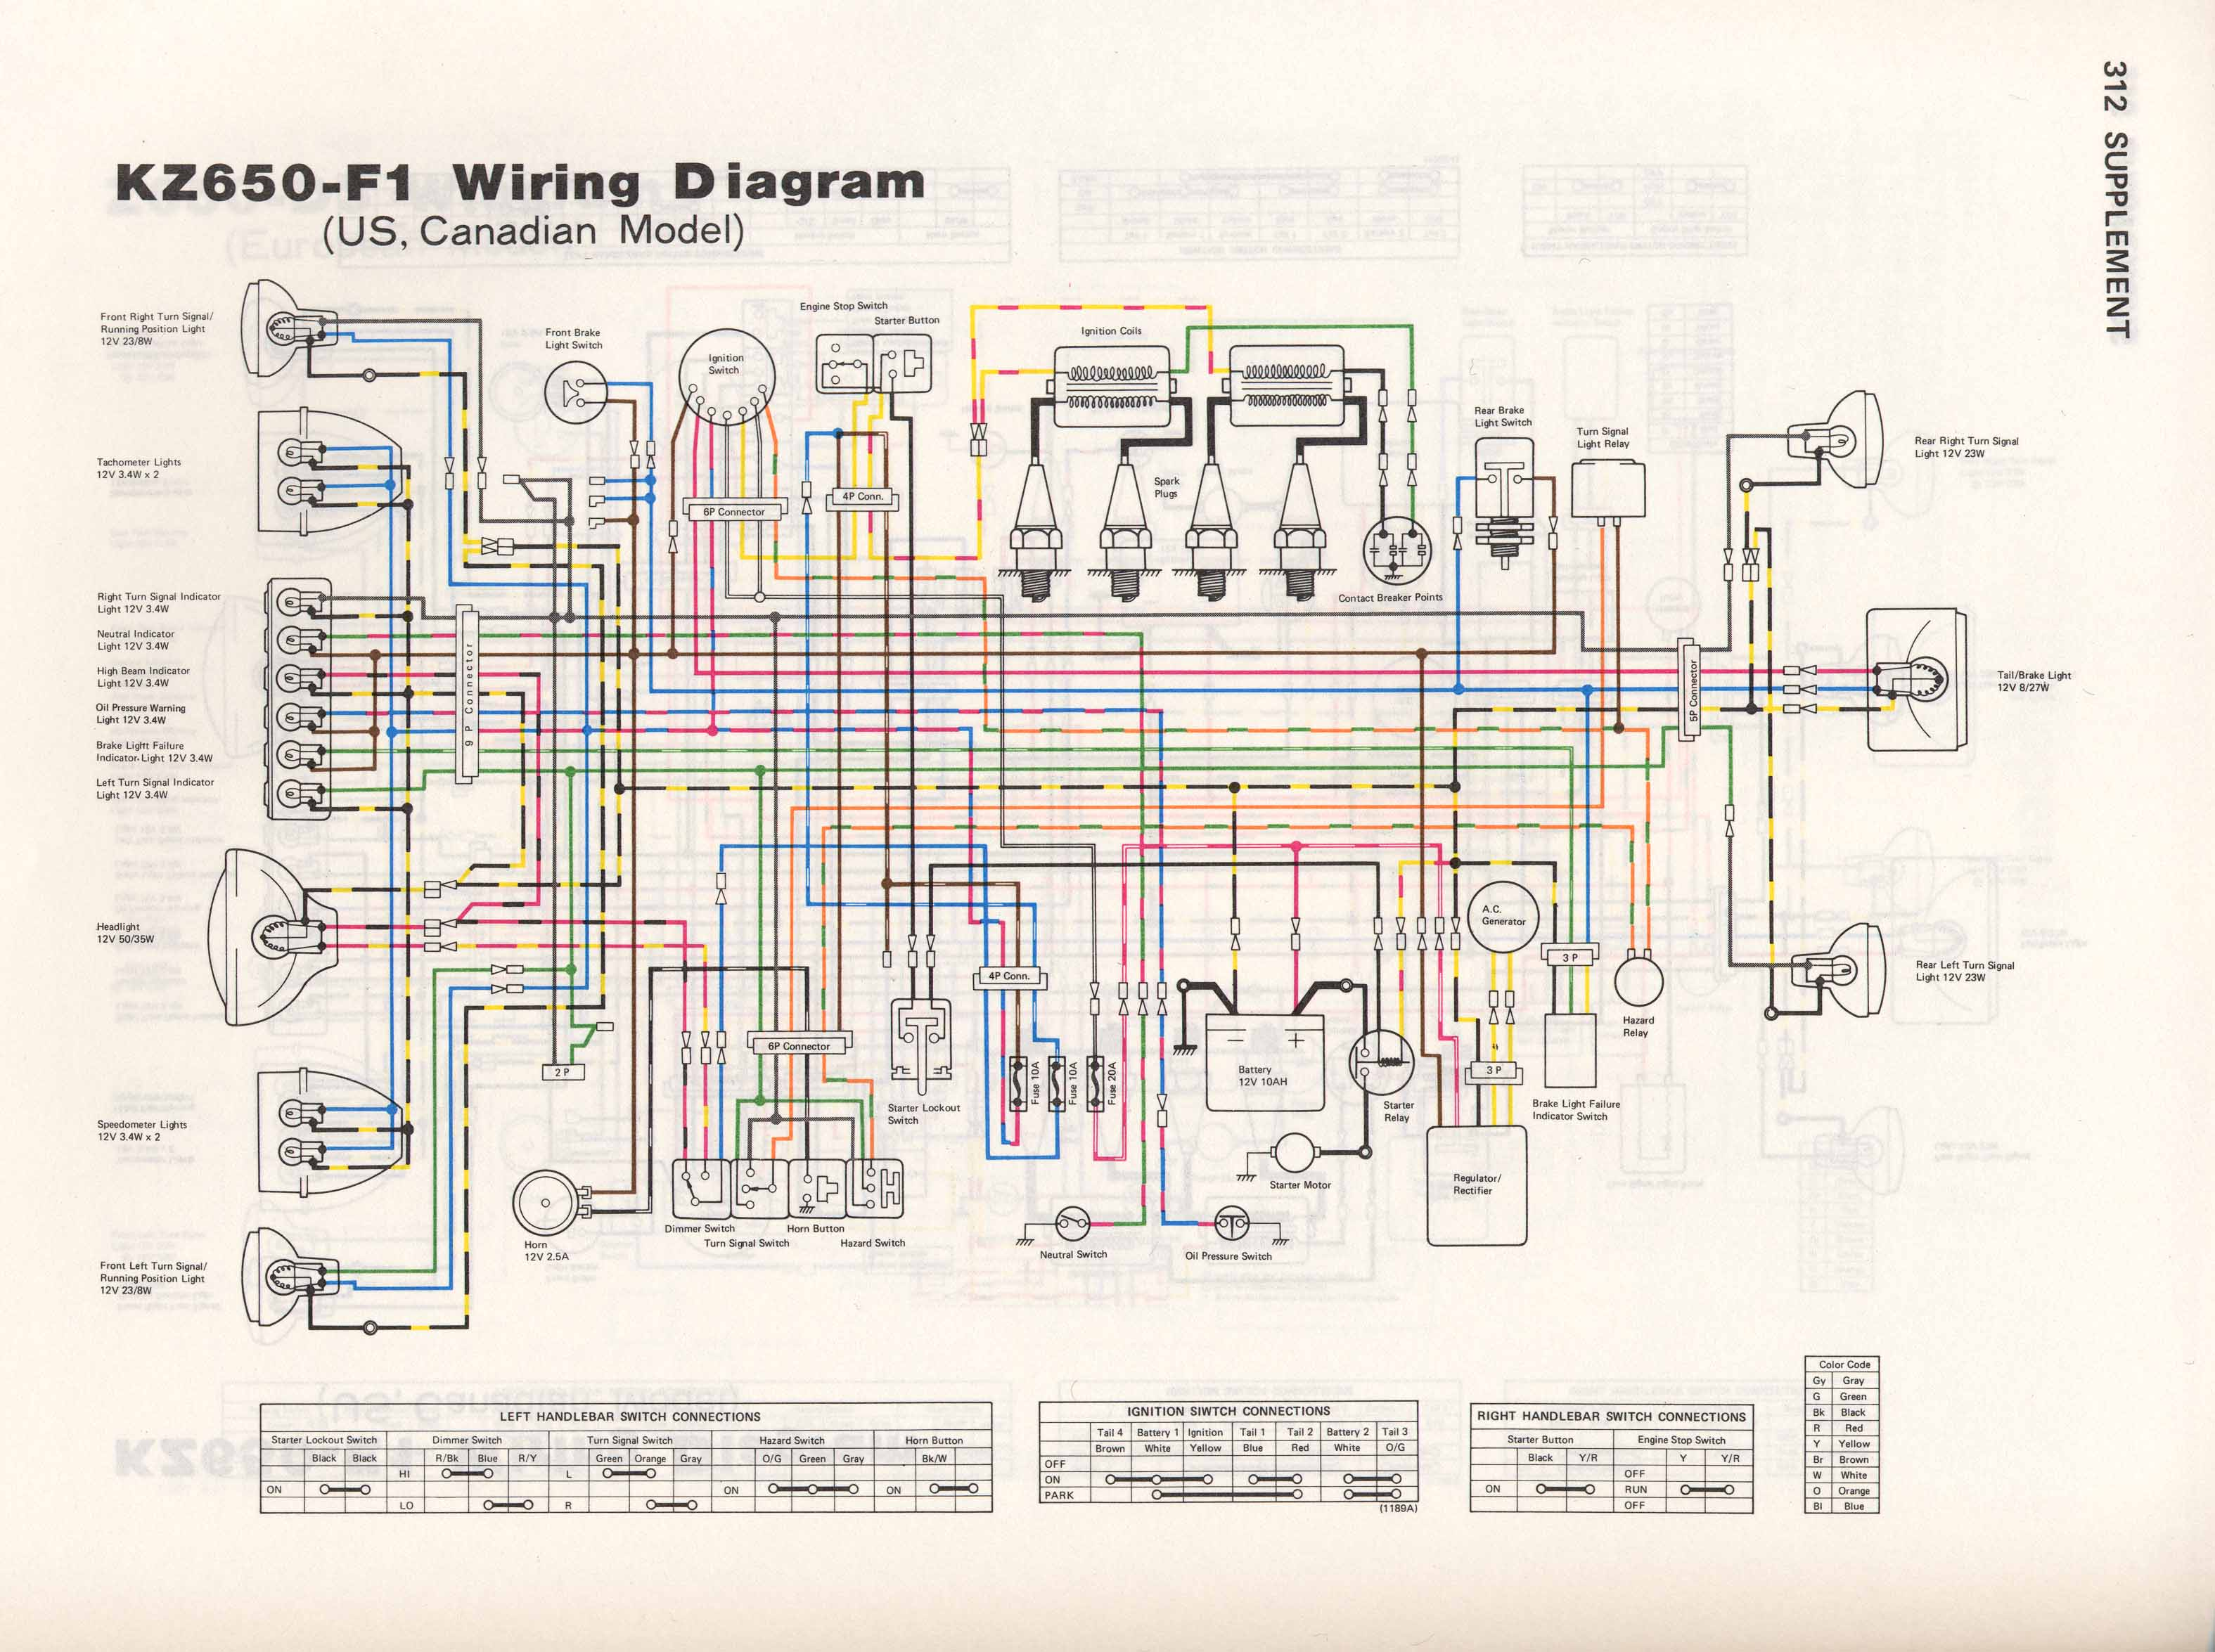 KZ650 F1 kz650 info wiring diagrams 1978 kz650 wiring harness at crackthecode.co